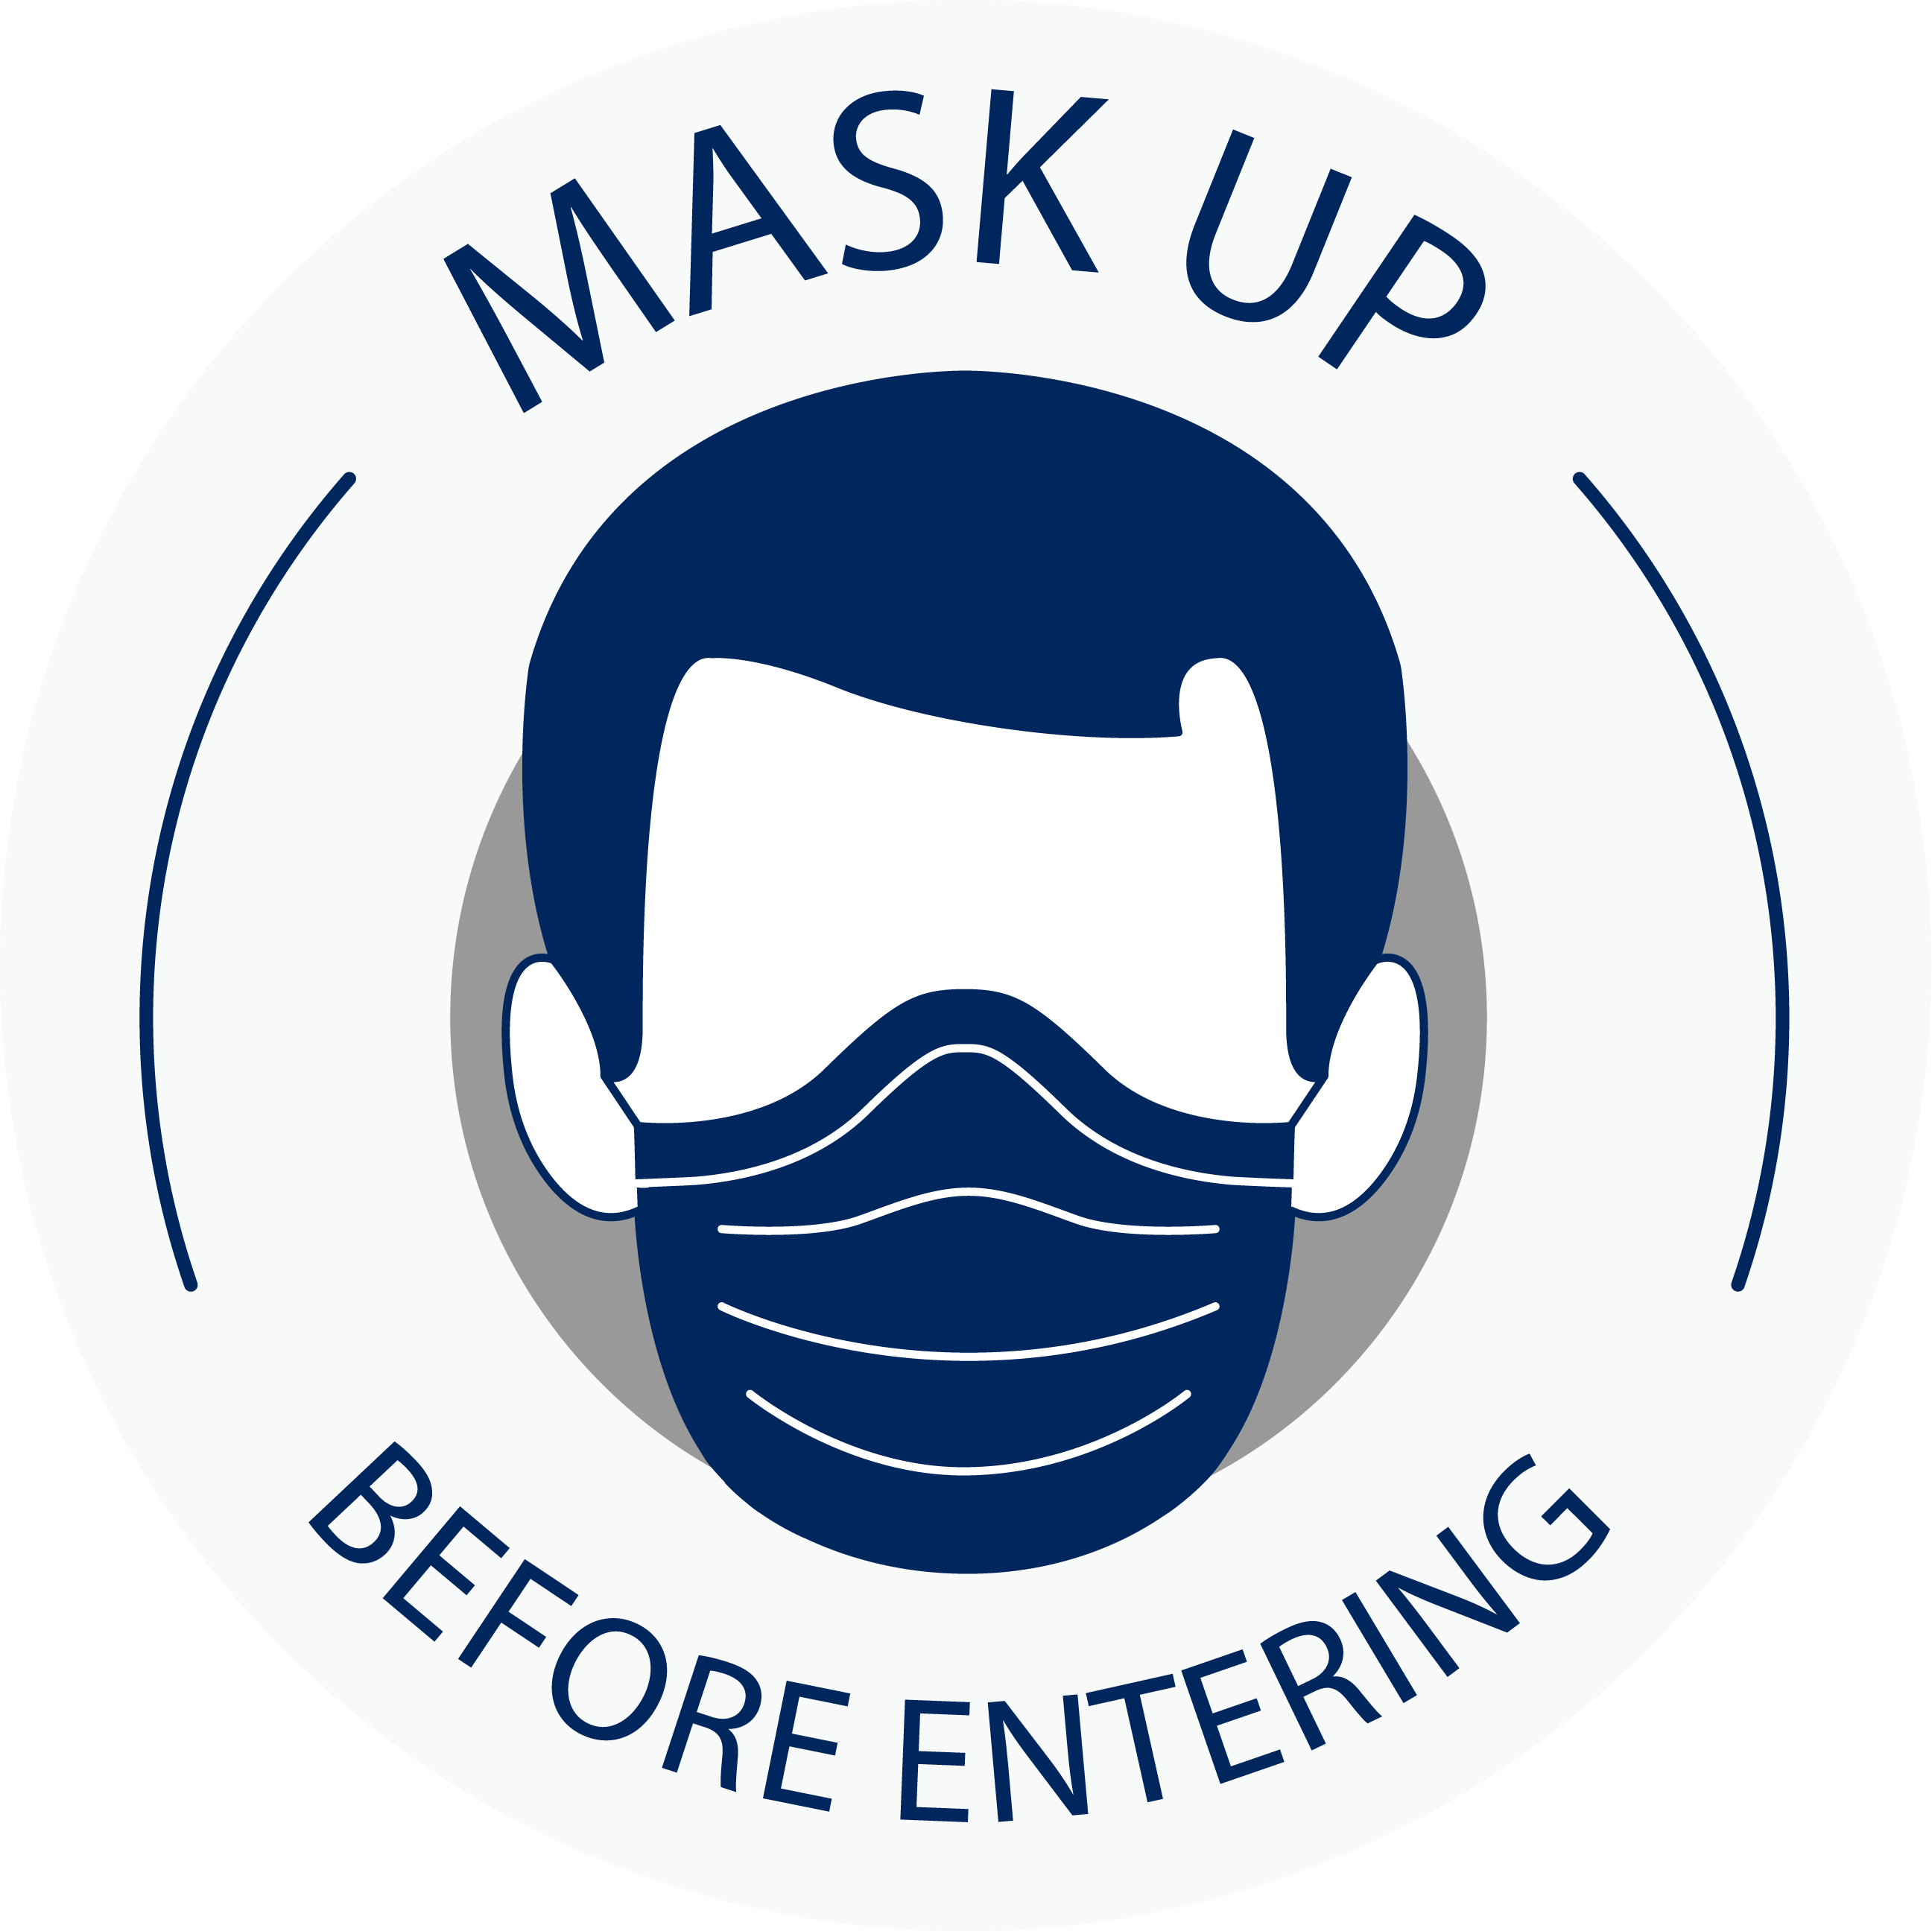 Mask Up Before Entering